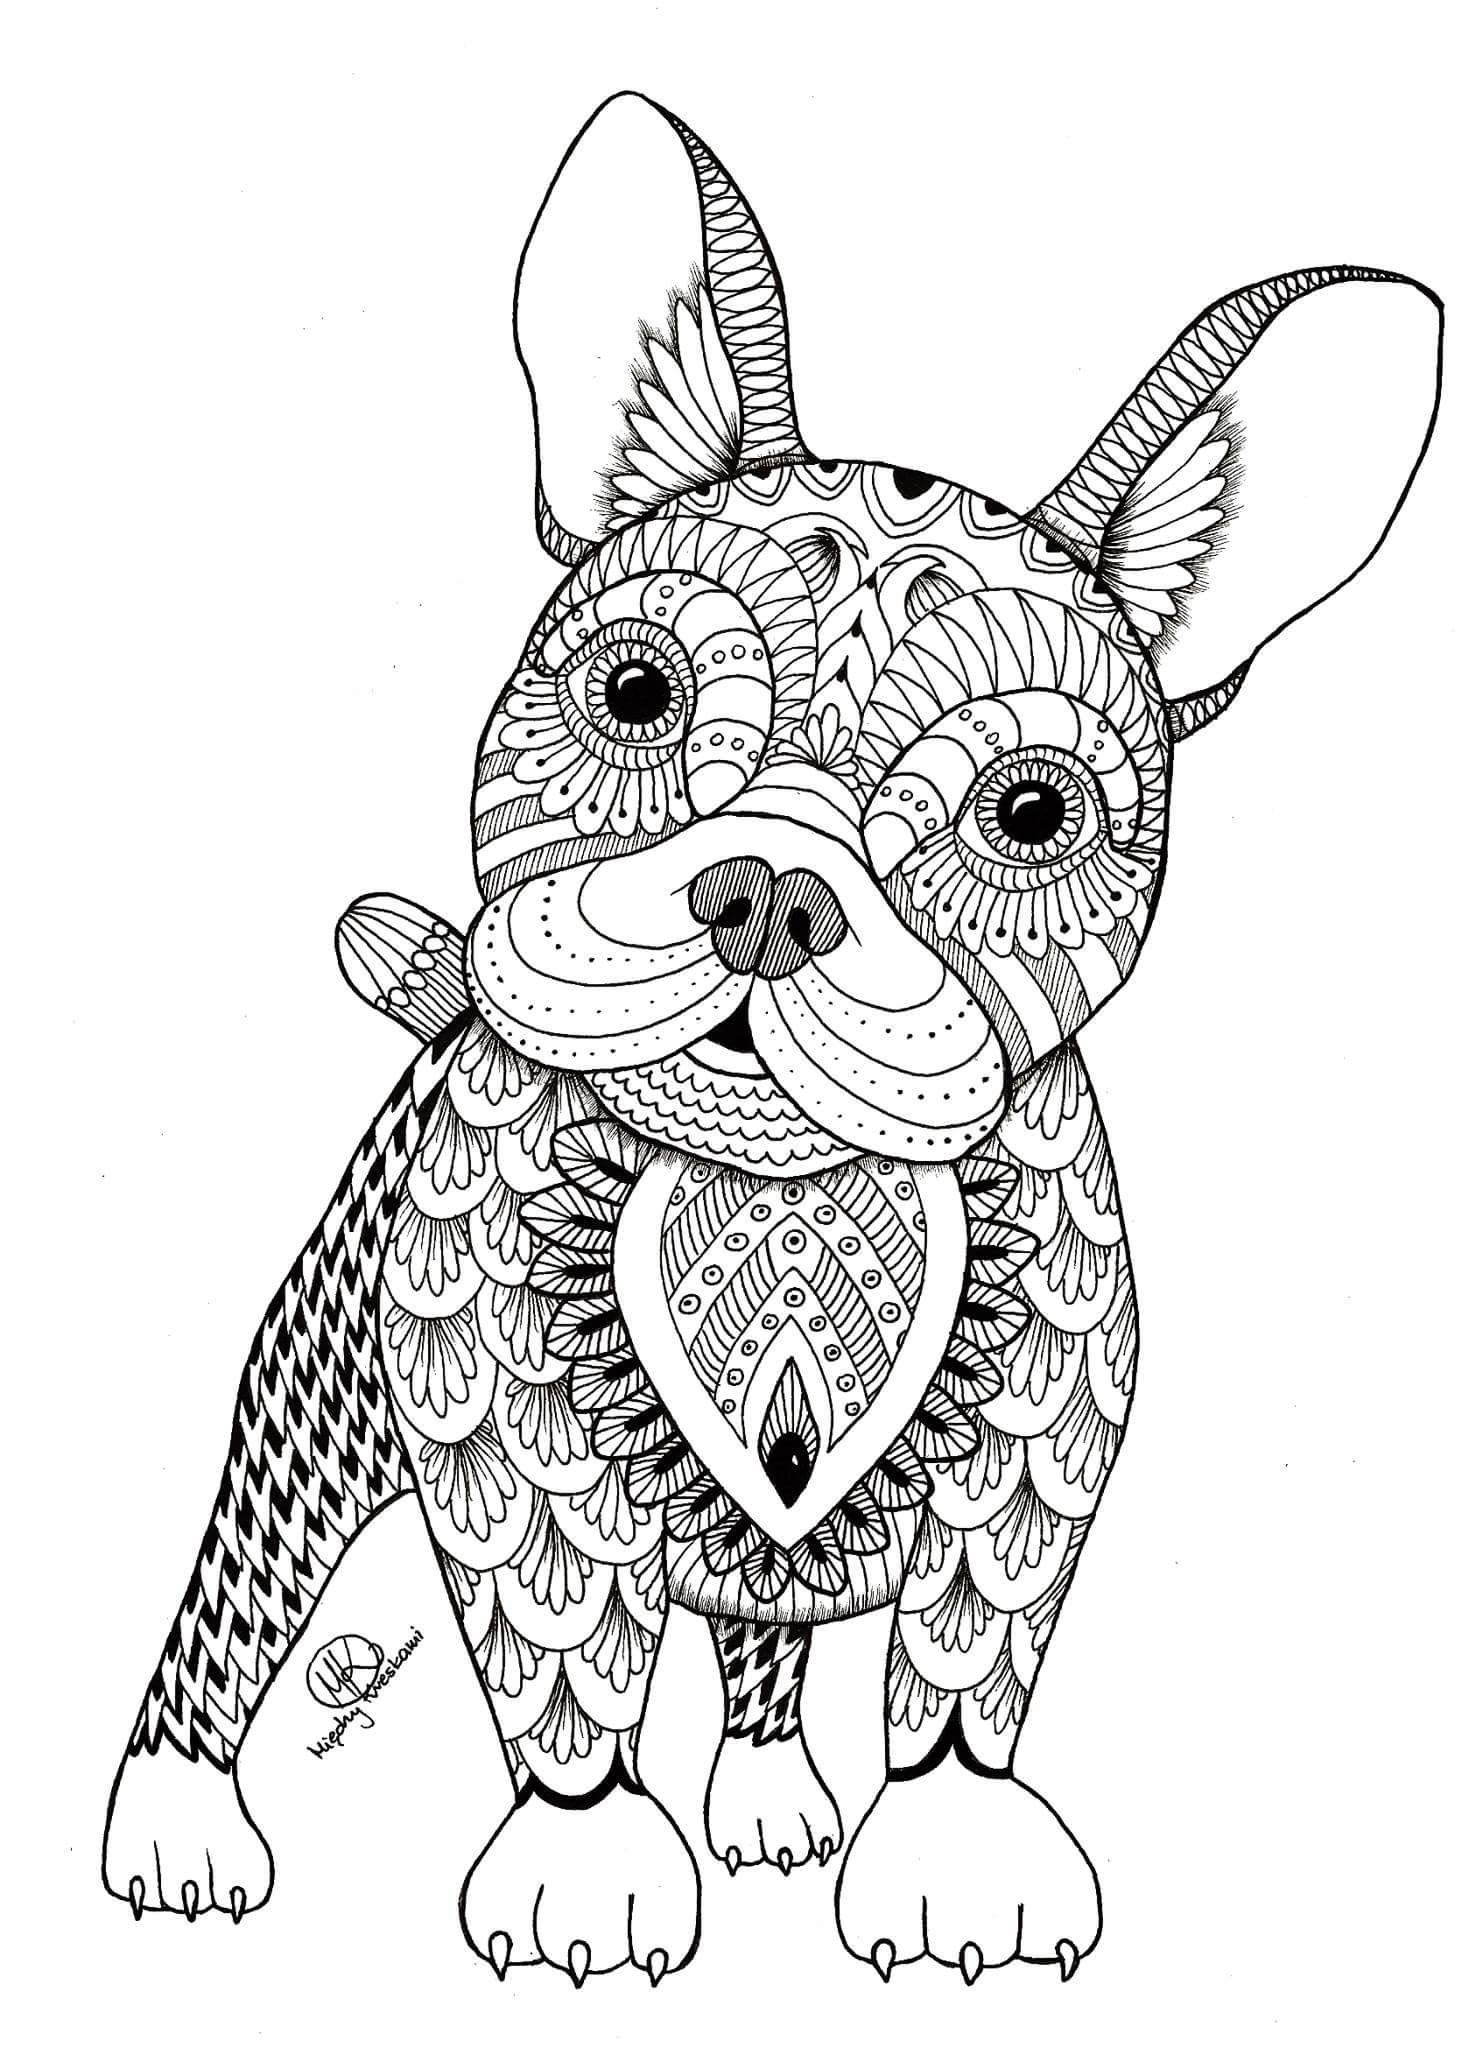 Scontent Flhr2 1 Fna Fbcdn Net V T31 0 8 Fr Cp0 E15 Q65 12087889 898359970241557 233493413205222 Animal Coloring Pages Mandala Coloring Pages Dog Coloring Page